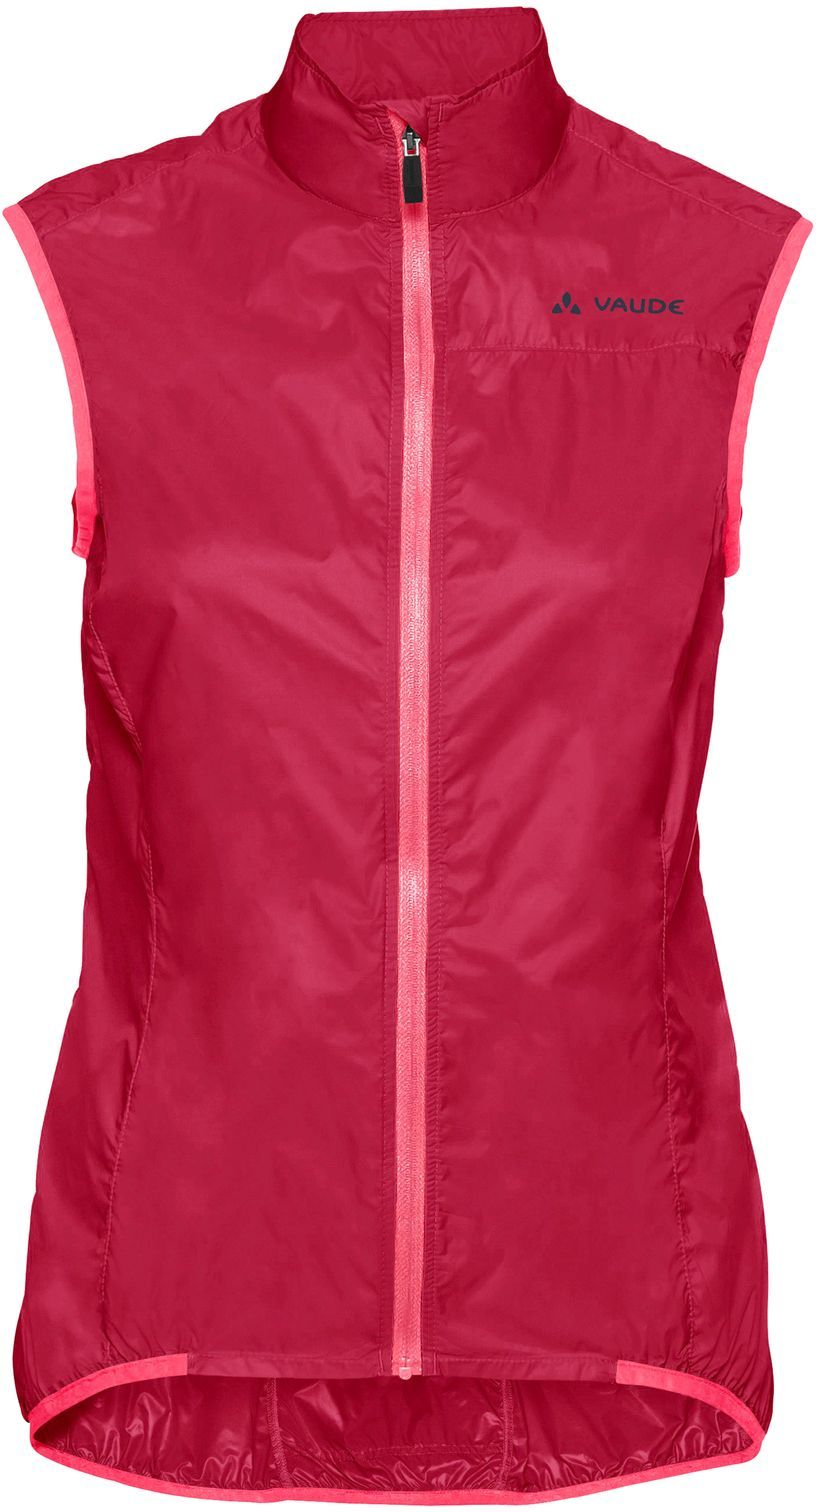 Vaude Women's Air Vest III - cranberry XS